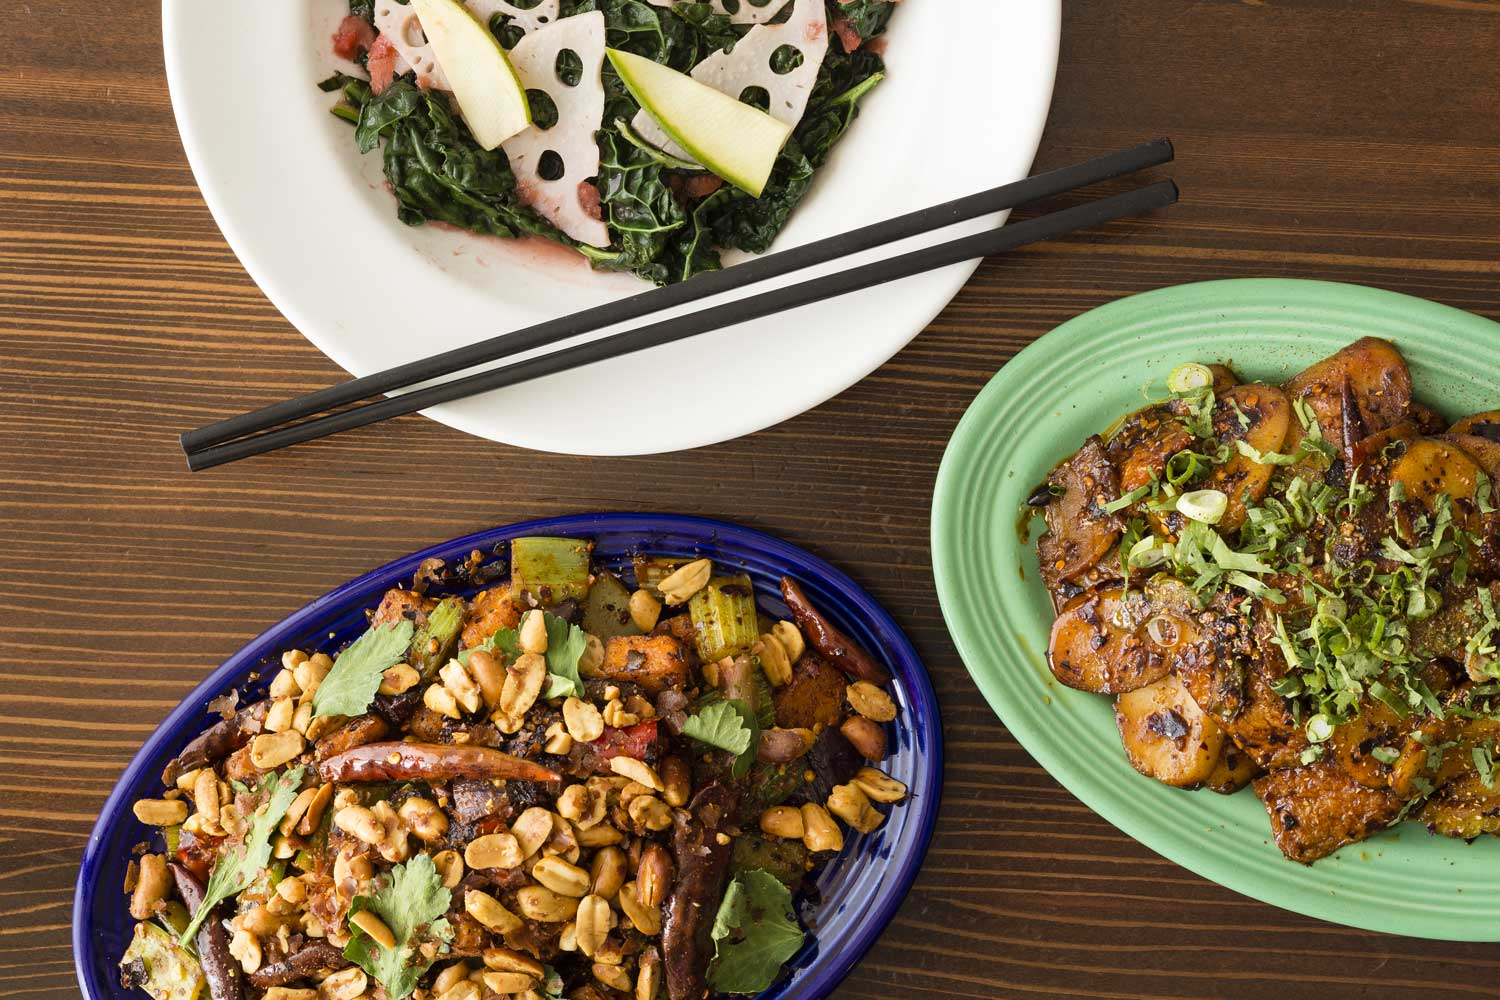 Clockwise from top: Danny Bowien's Black Kale, Thrice Cooked Bacon & Kung Pao Pastrami  photo courtesy of Andrew Rowat